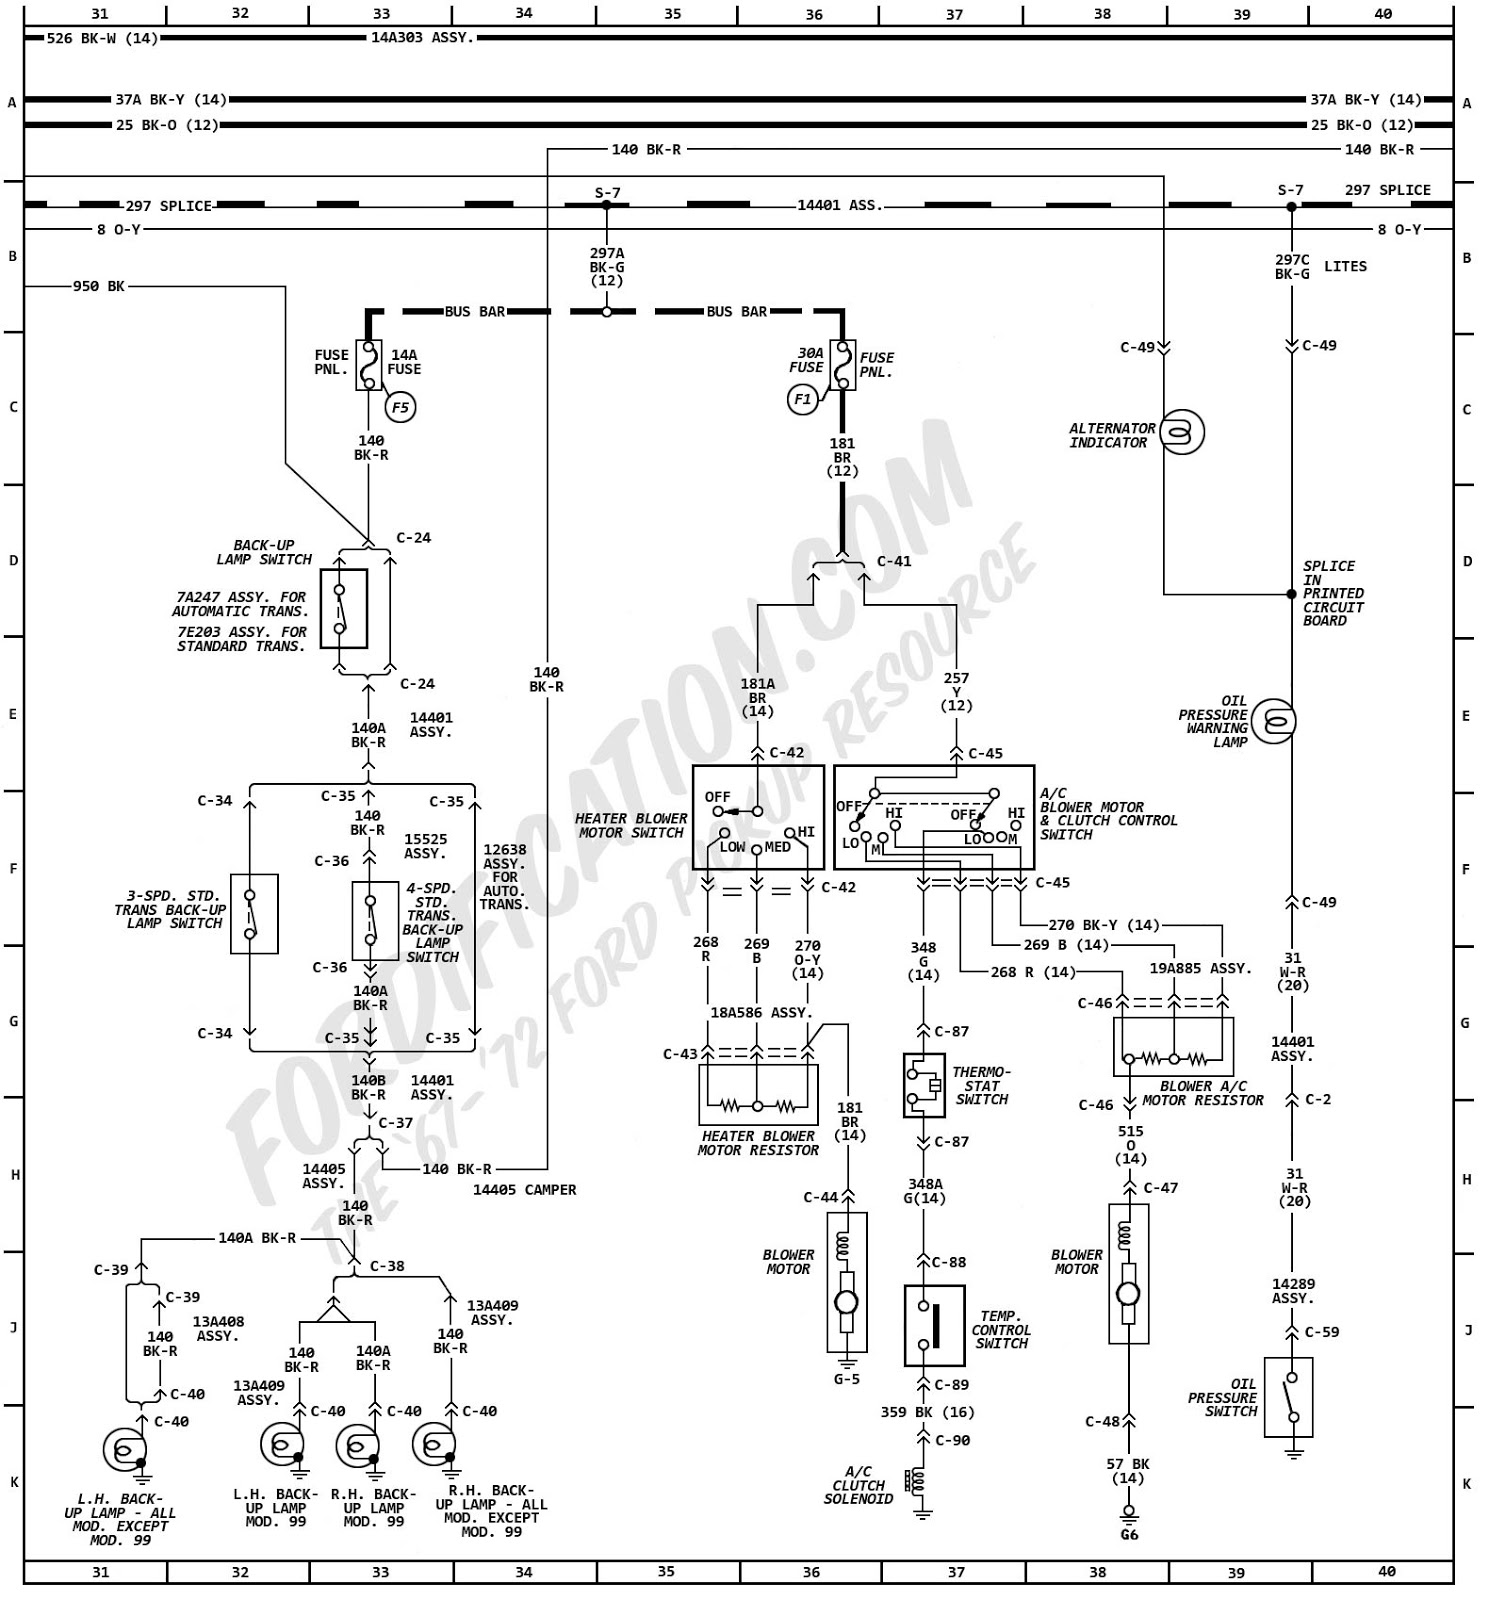 Tecumseh Compressor Wiring Diagram from 2.bp.blogspot.com